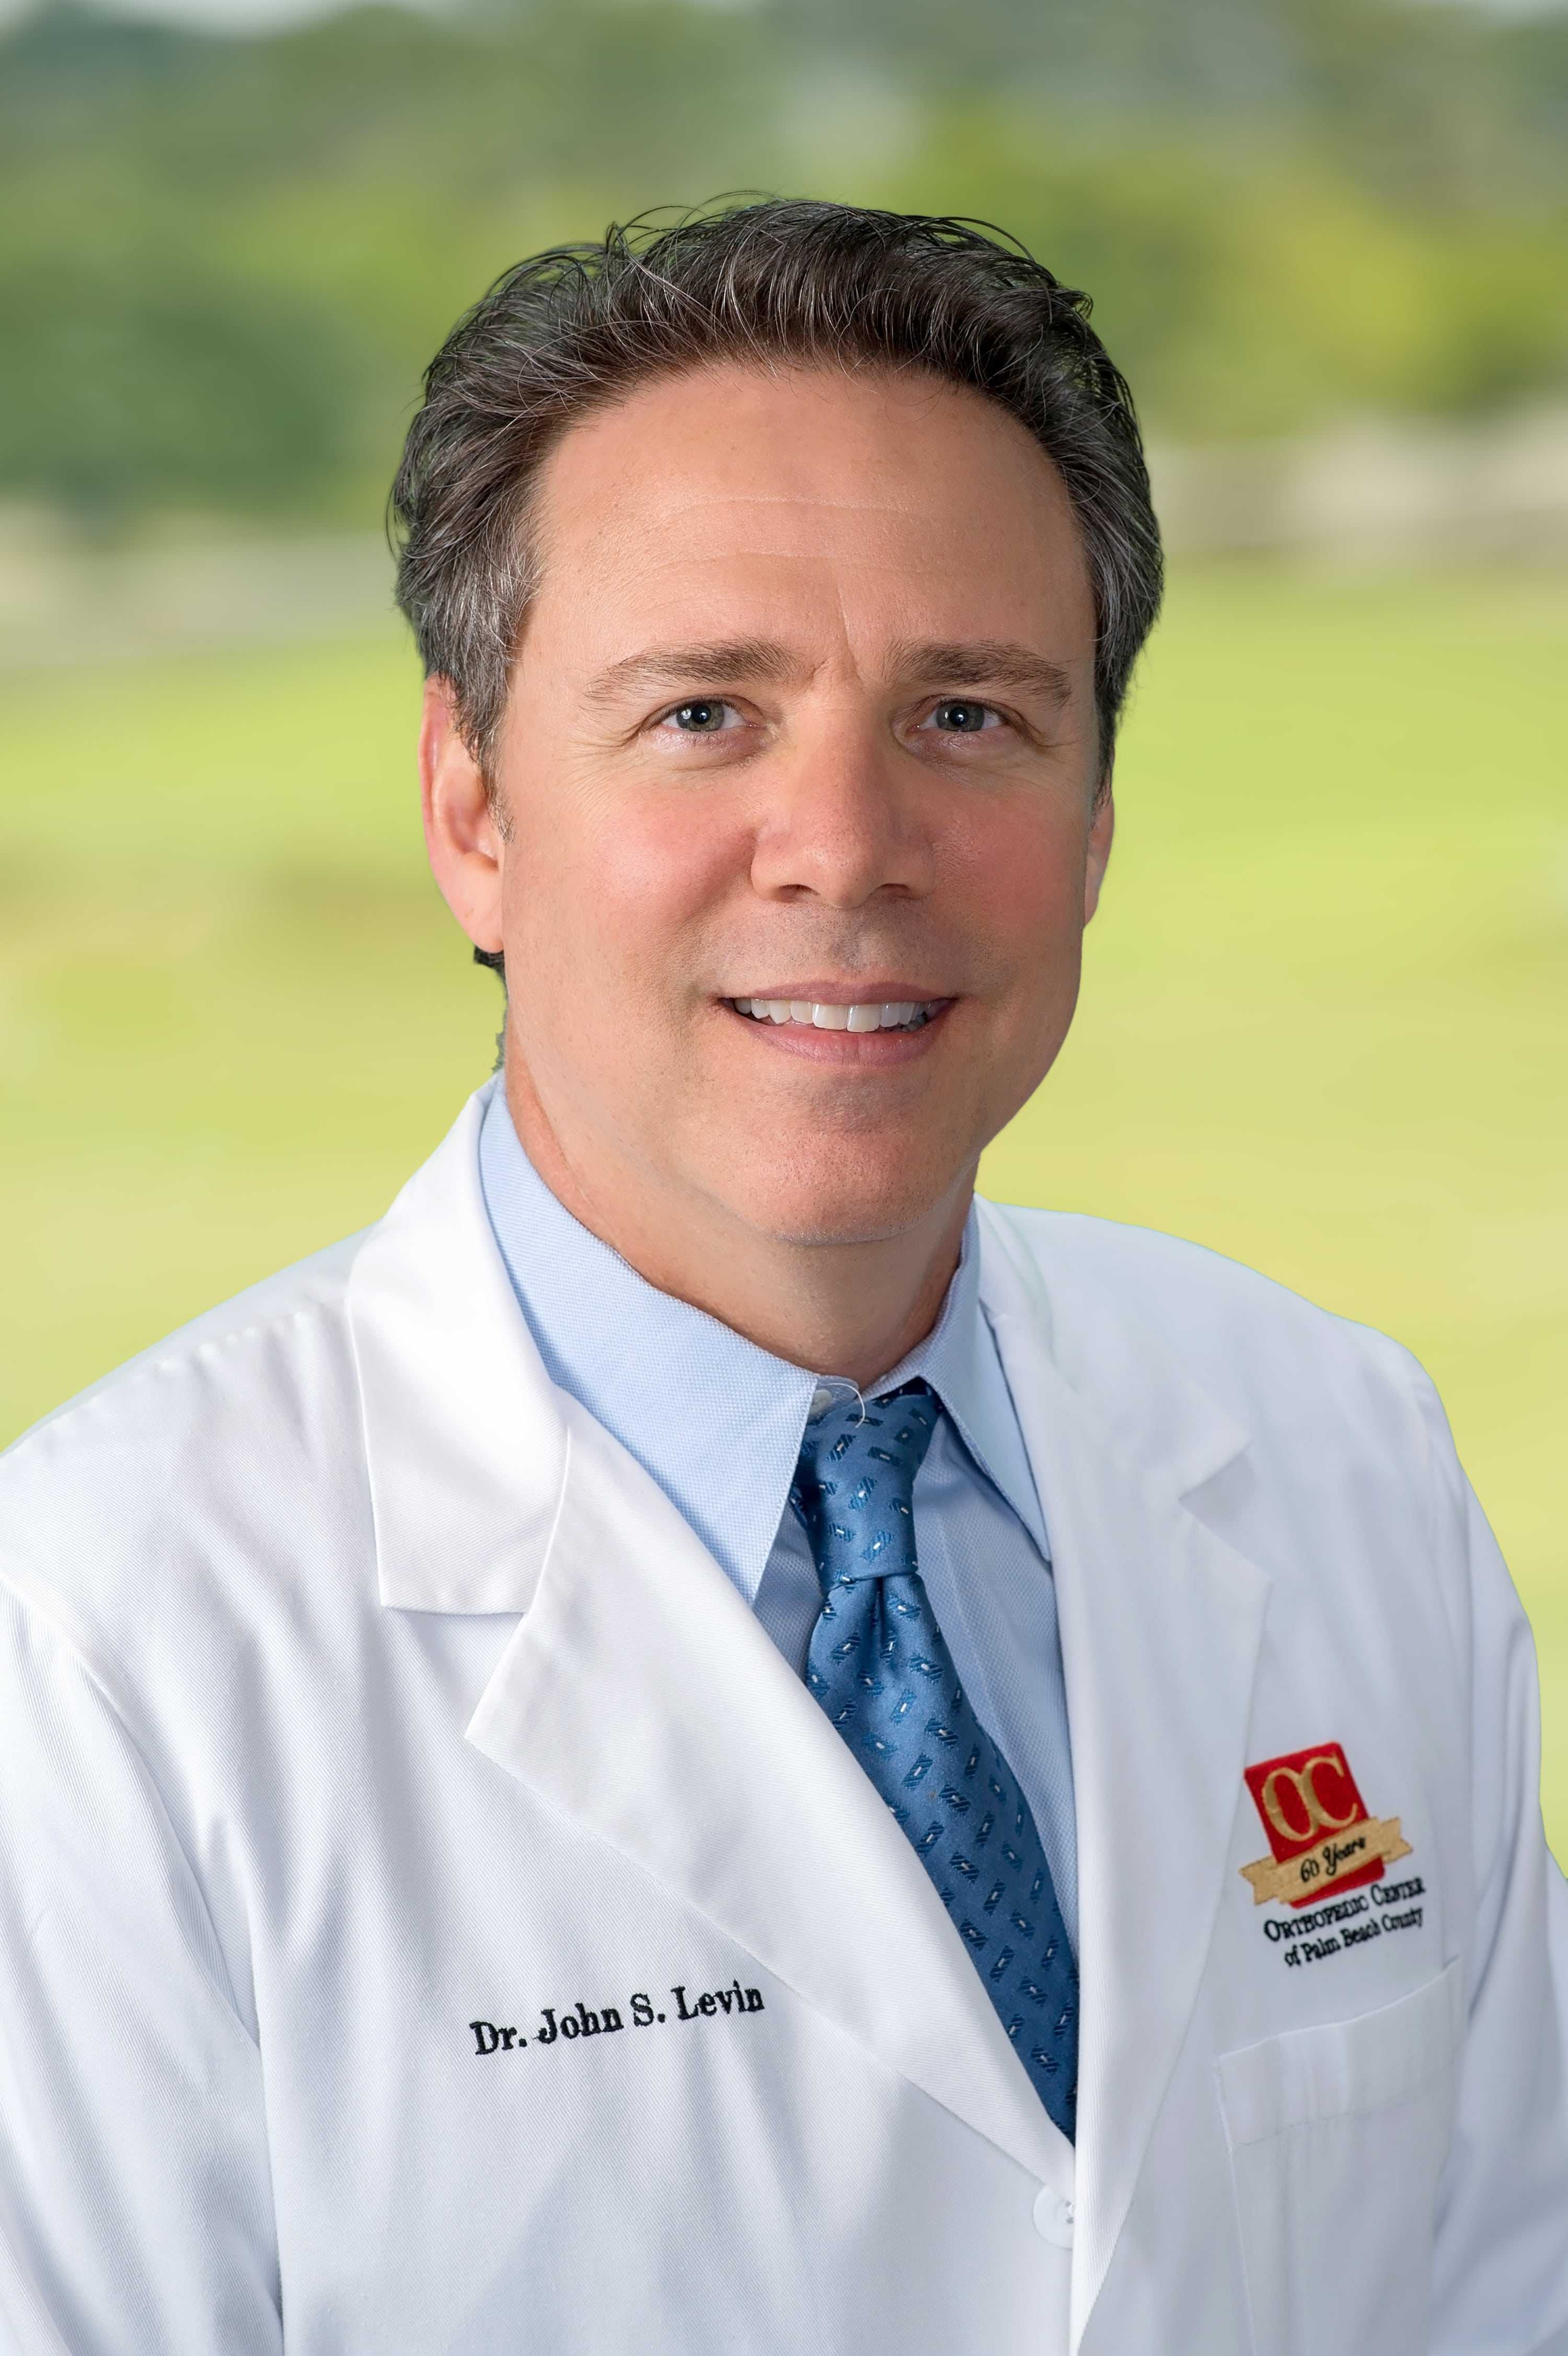 Dr. John Levin offers podiatric treatment for plantar fasciitis